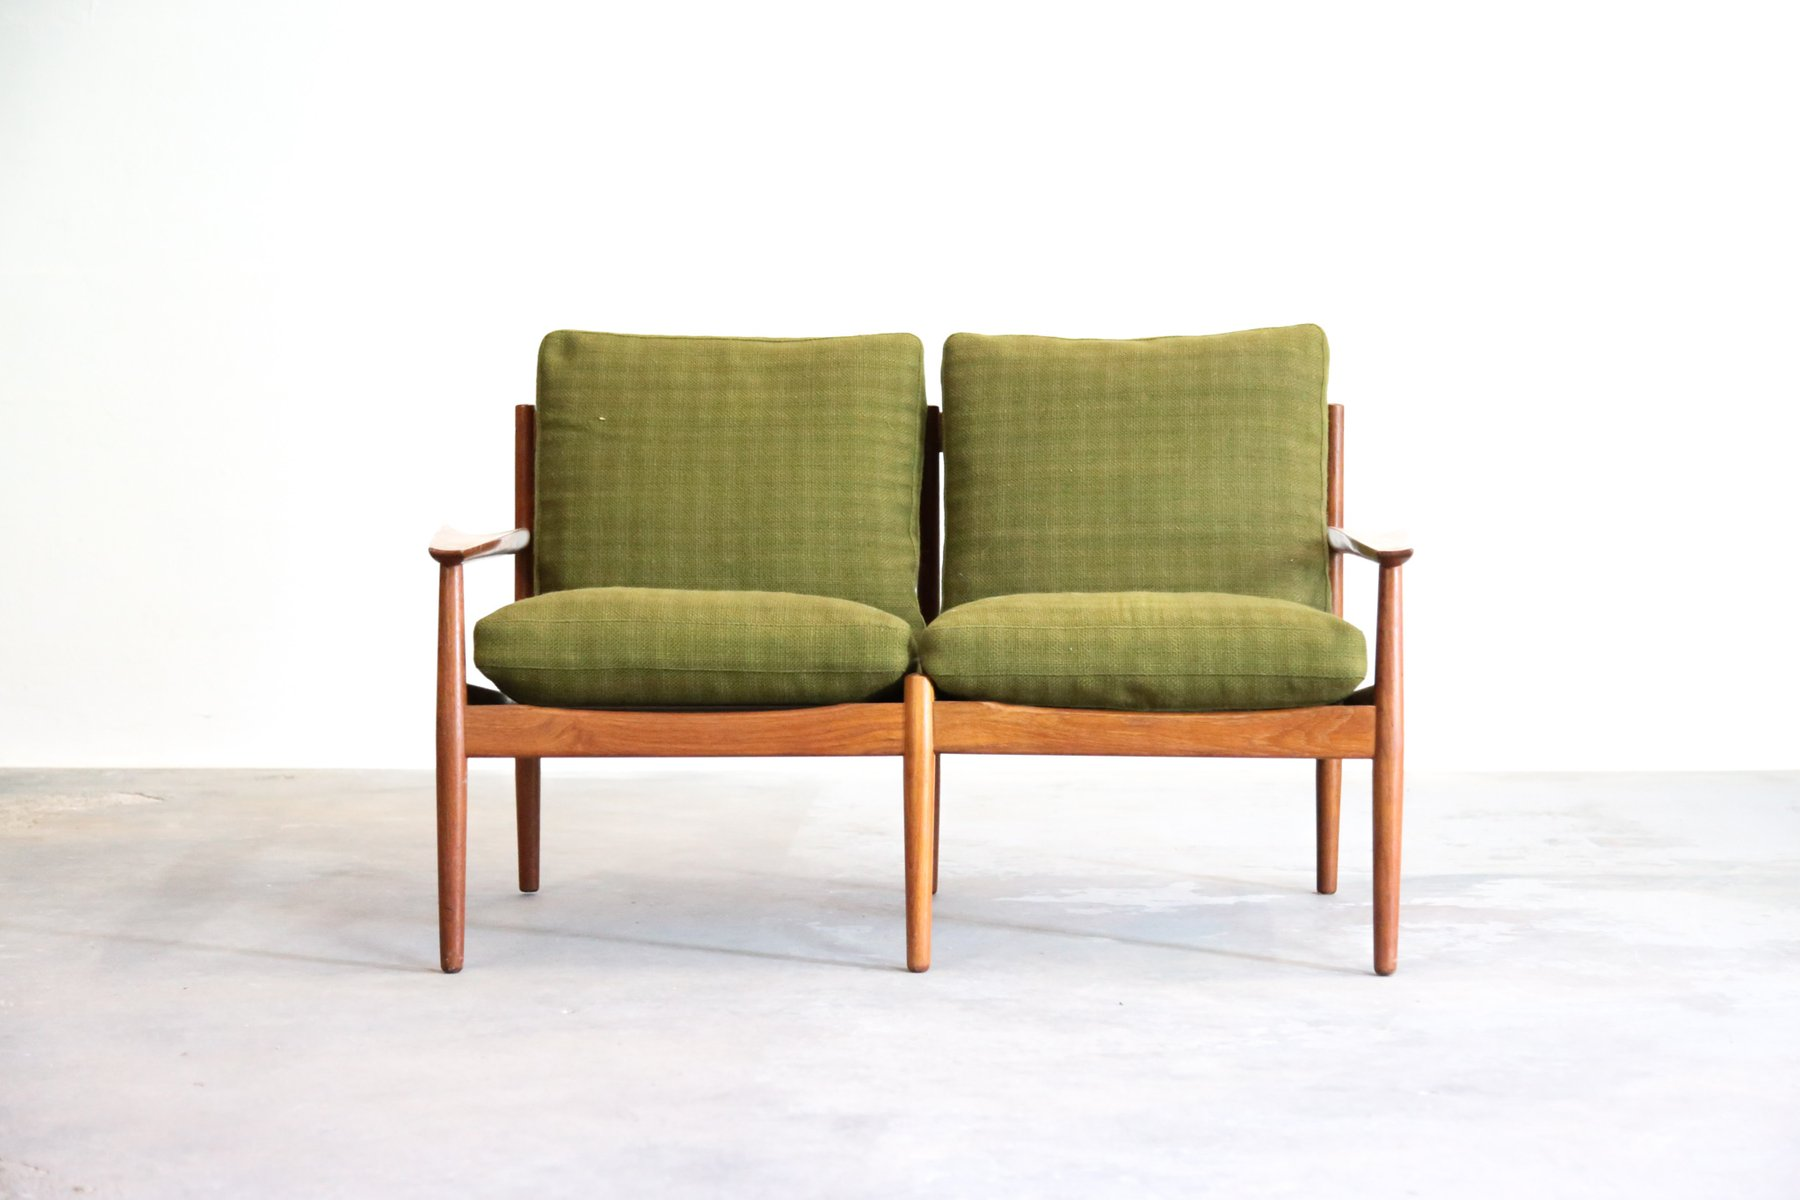 Small Danish 2 Seater Teak Bench by Arne Vodder for Glostrup